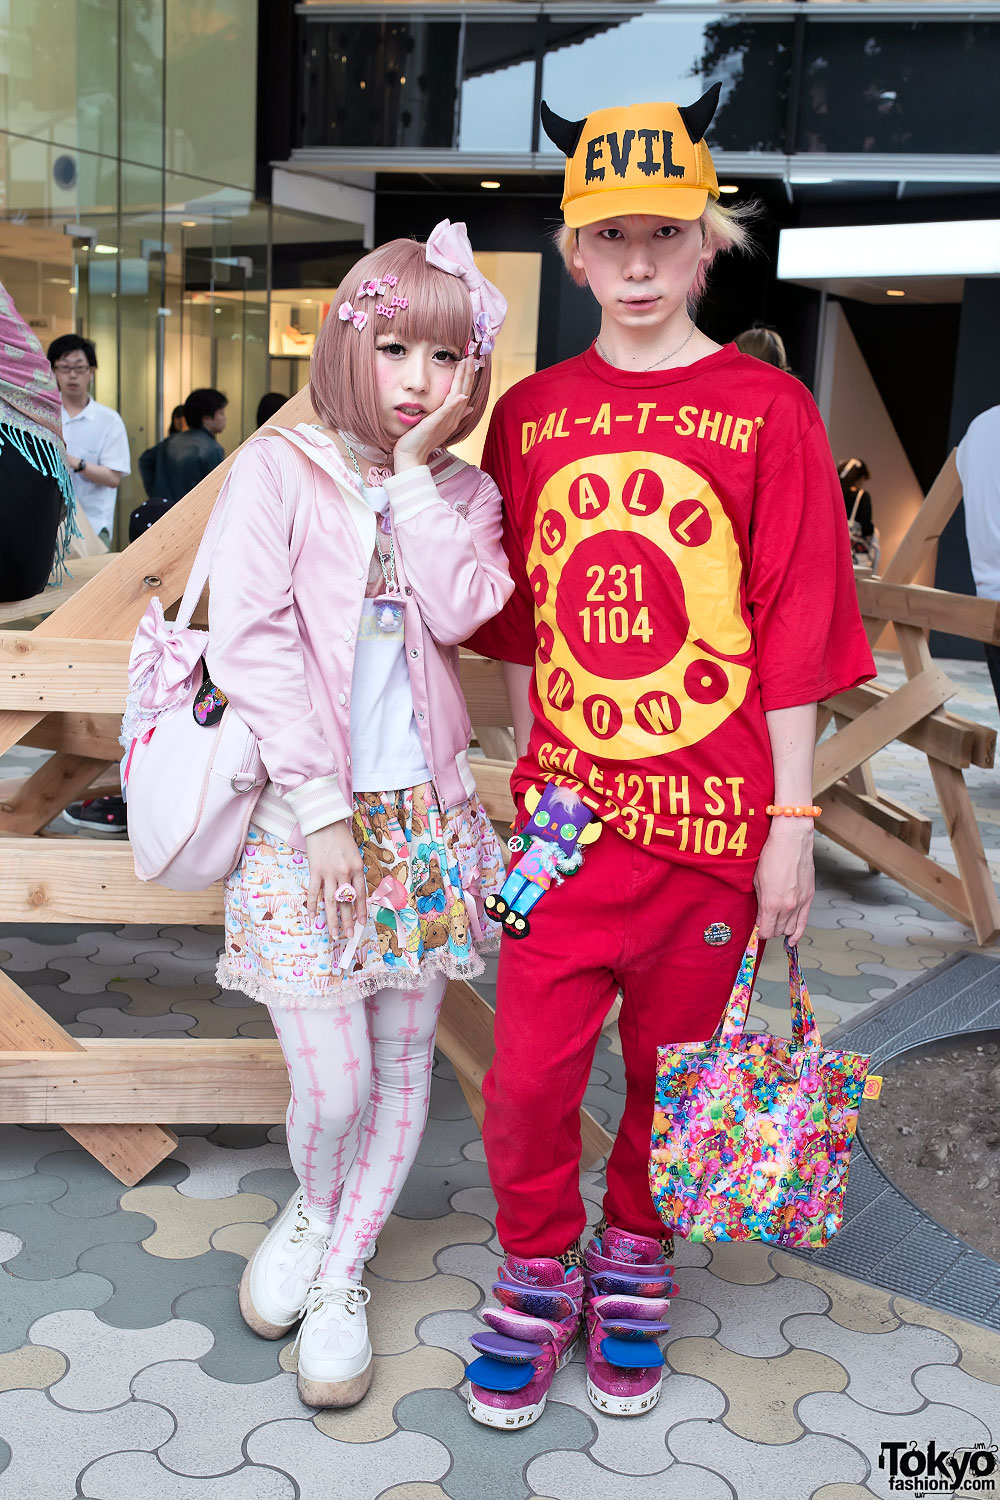 Colorful Harajuku Street Style w/ Nile Perch, Bows, Bears, Cupcakes & Evil